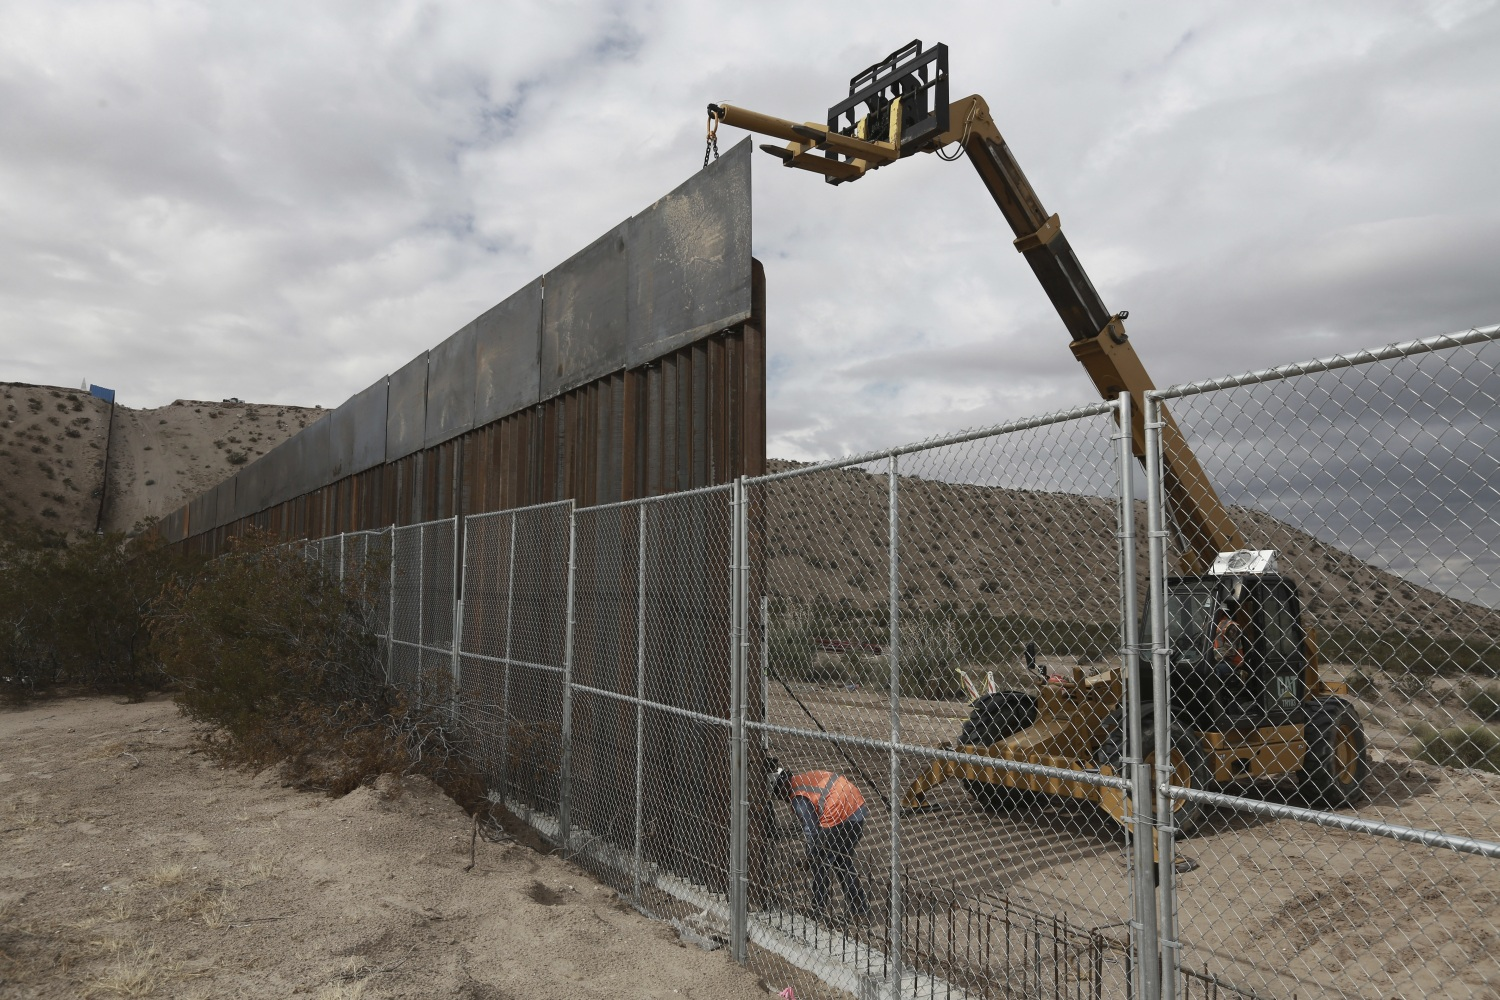 Ron Paul: A Better Solution Than A Border Wall